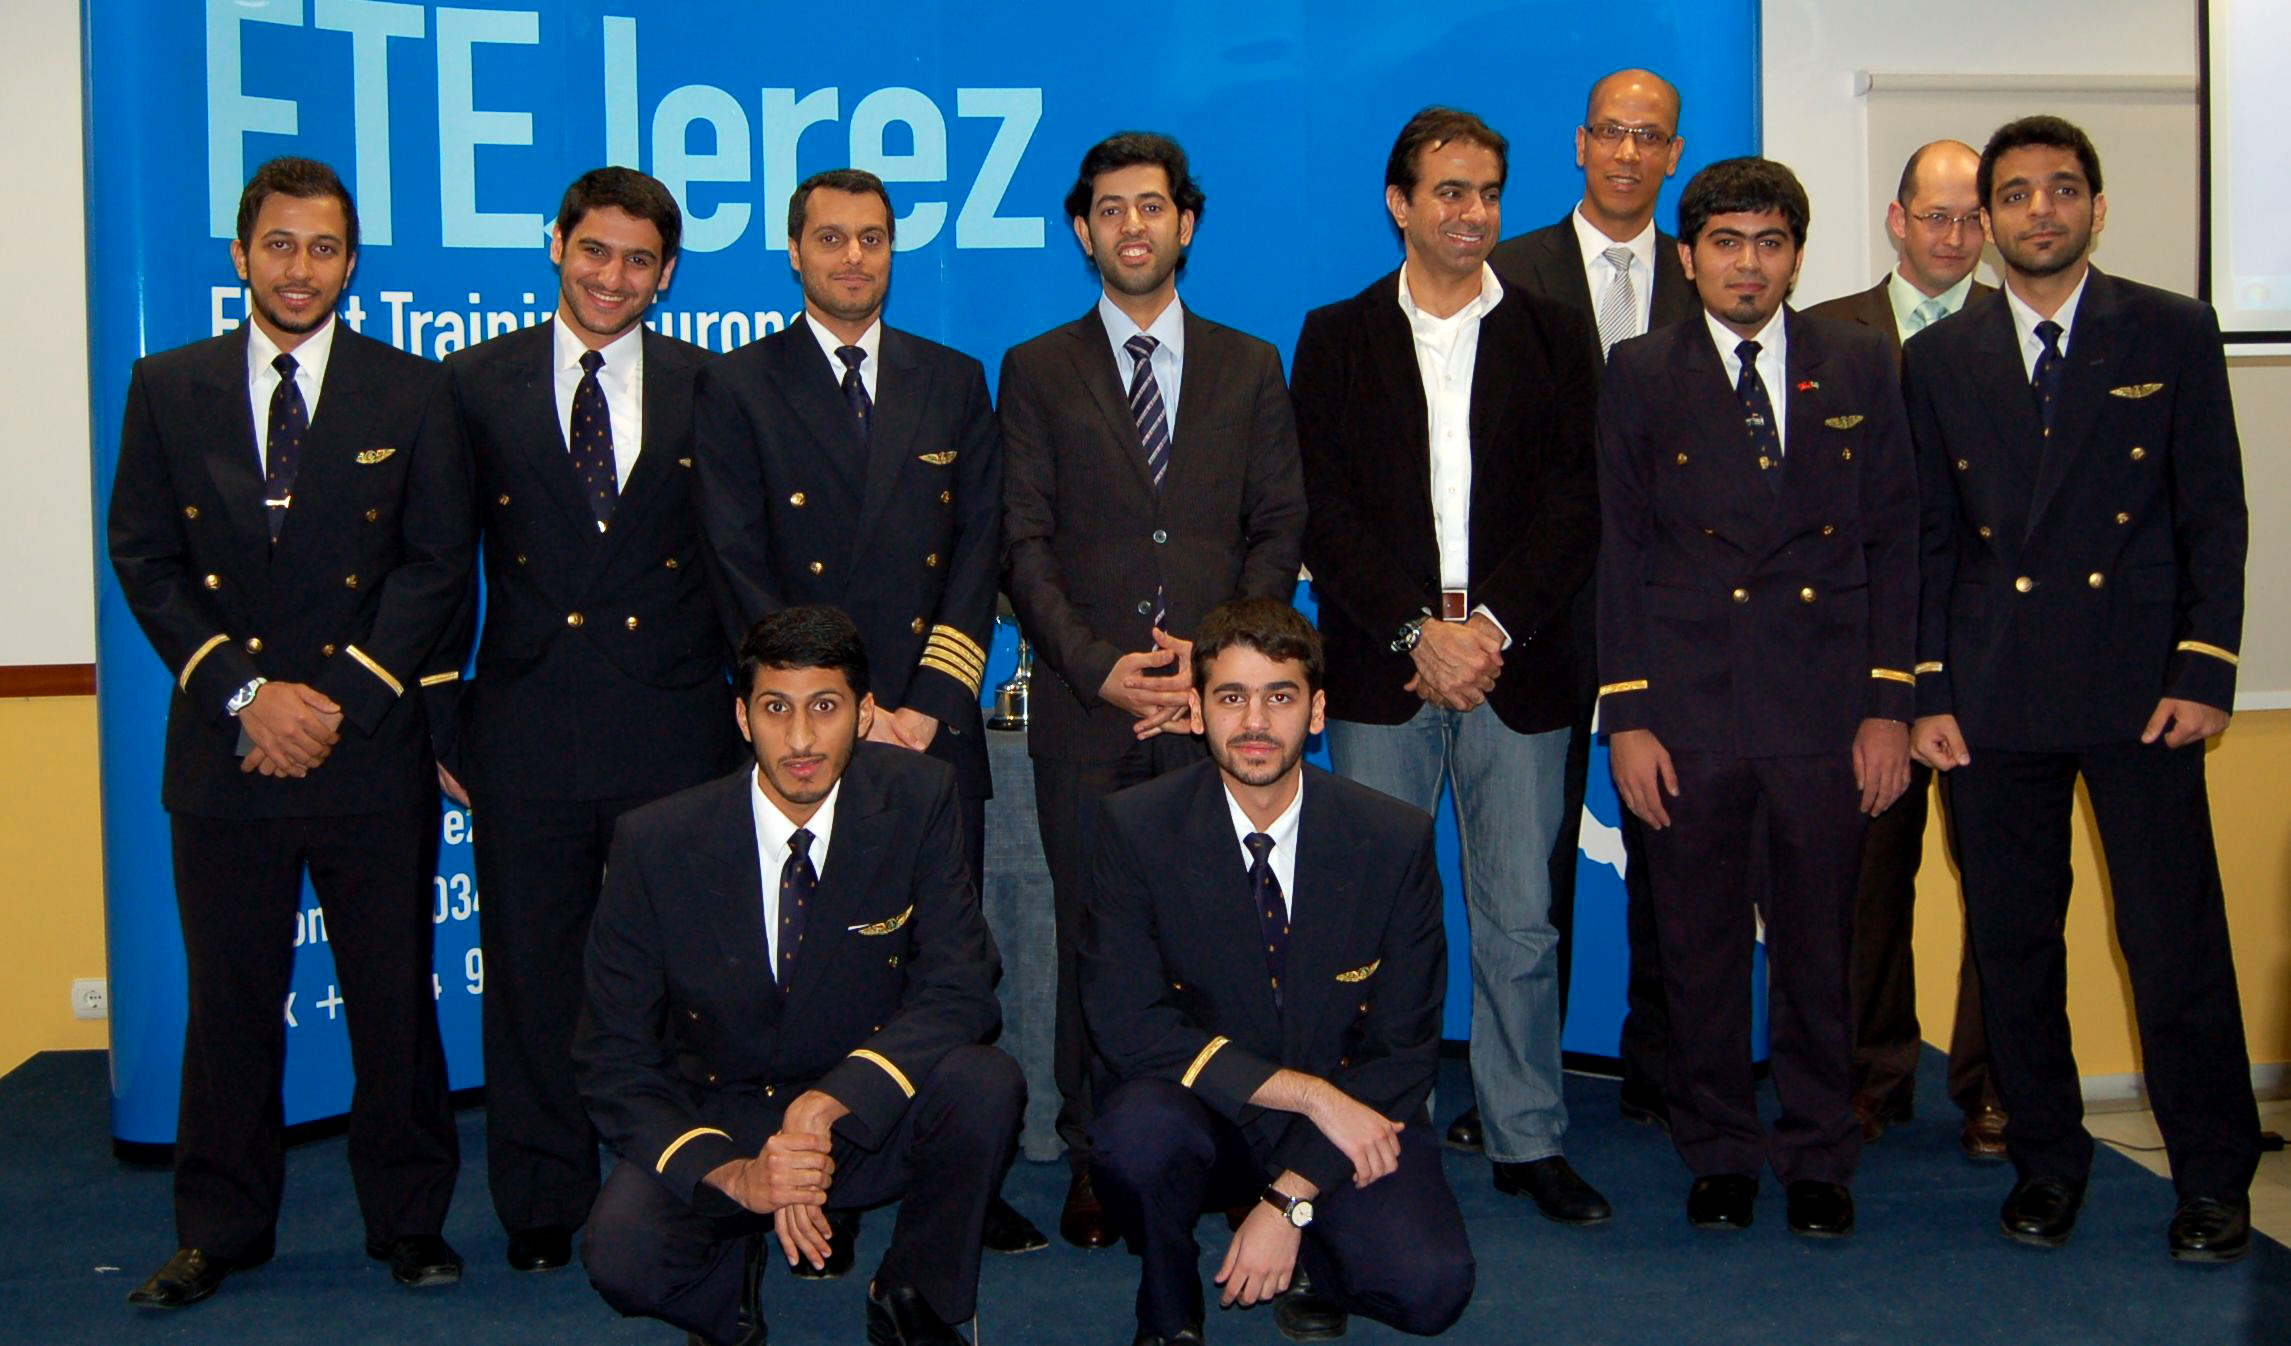 Sezgi Sena Akay Haziran 2013 furthermore Cadets Graduate From Ftejerezs Emirates Course also Engine Orders Favour Offshore And Specialised Vessels Wartsila together with Poll 2014 Infected Mushroom together with 5 Life Lessons Learned From Captain Jack Sparrow. on oscar 2013 live